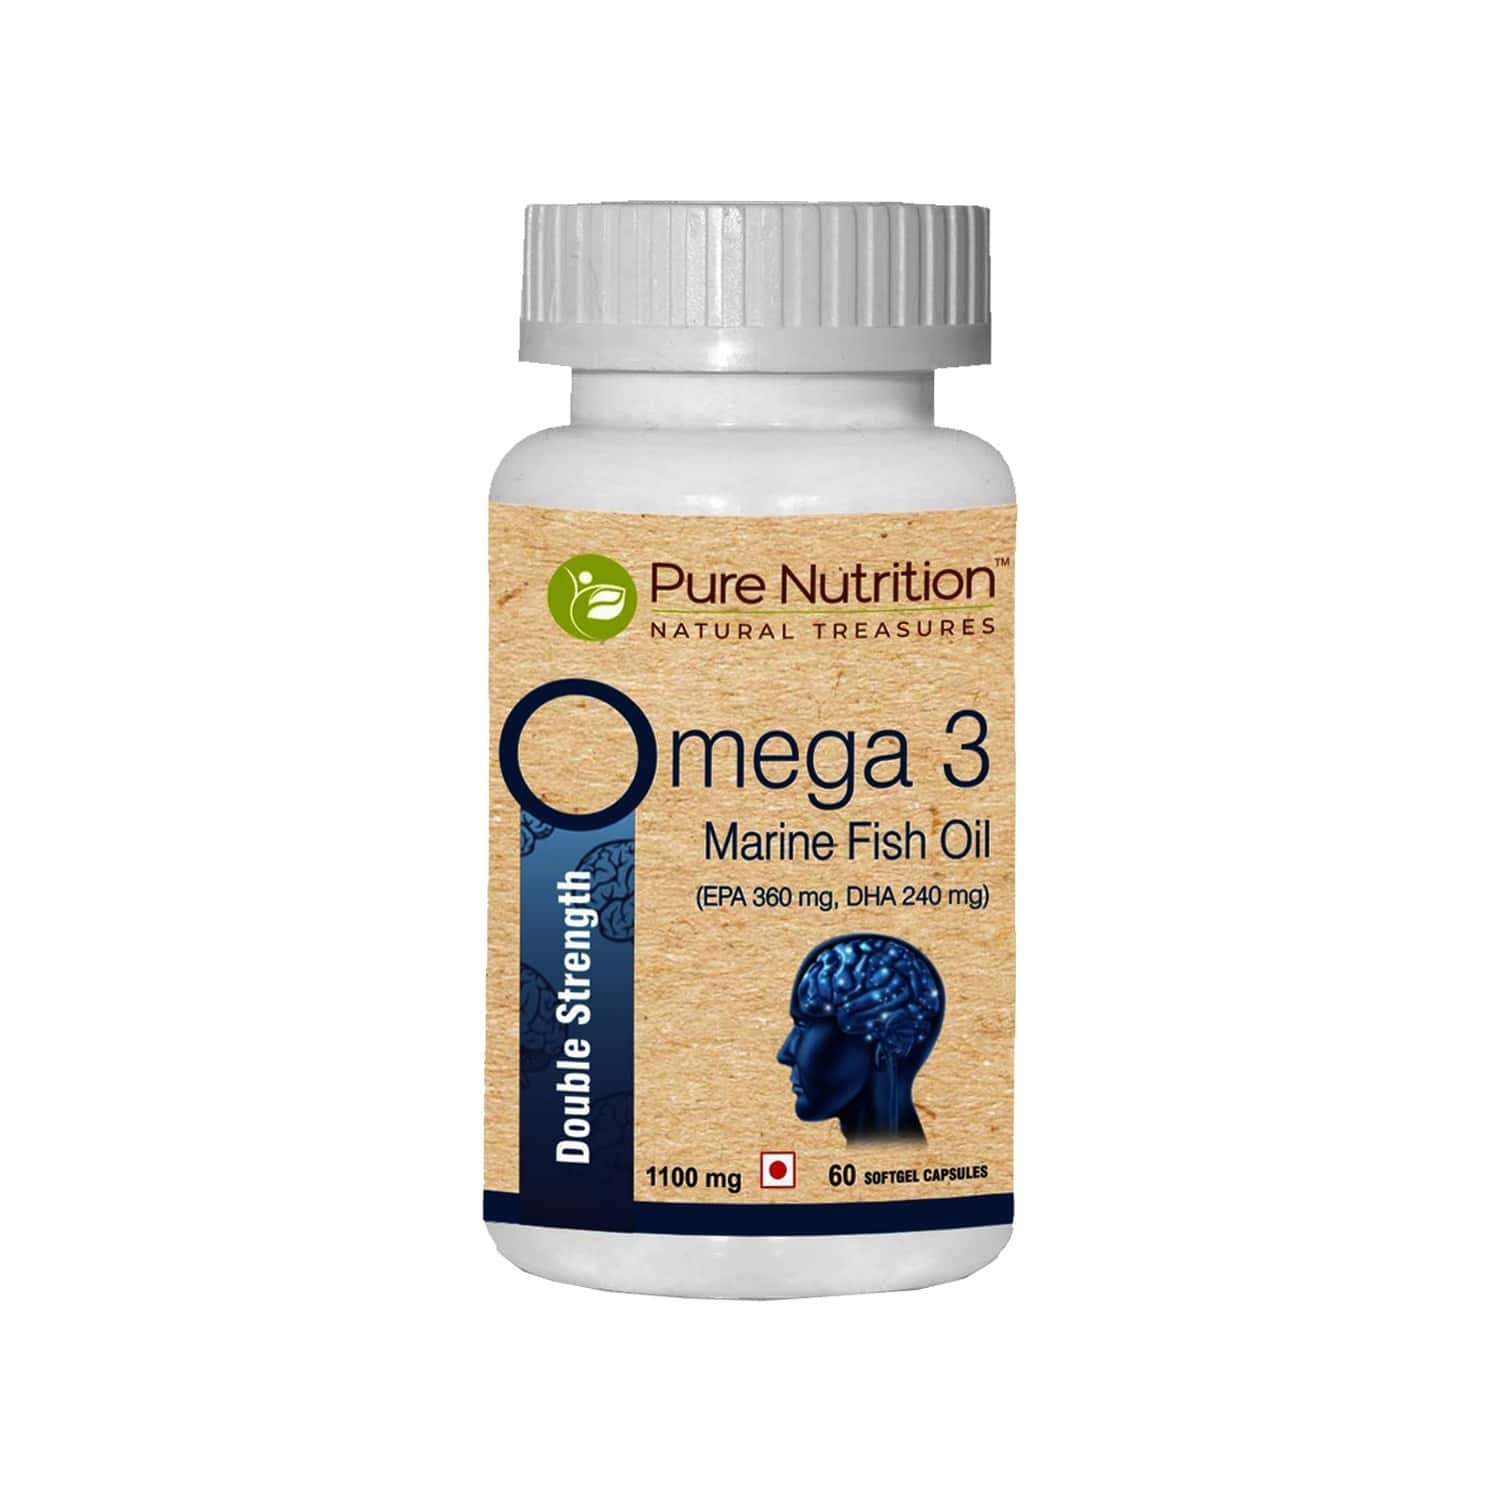 Pure Nutrition Omega 3 Double Strength Marine Fish Oil (1000mg Omega 3, With 360 Mg Epa & 240 Mg Dha) For Brain, Heart And Eye Health - 75 Softgel Capsules